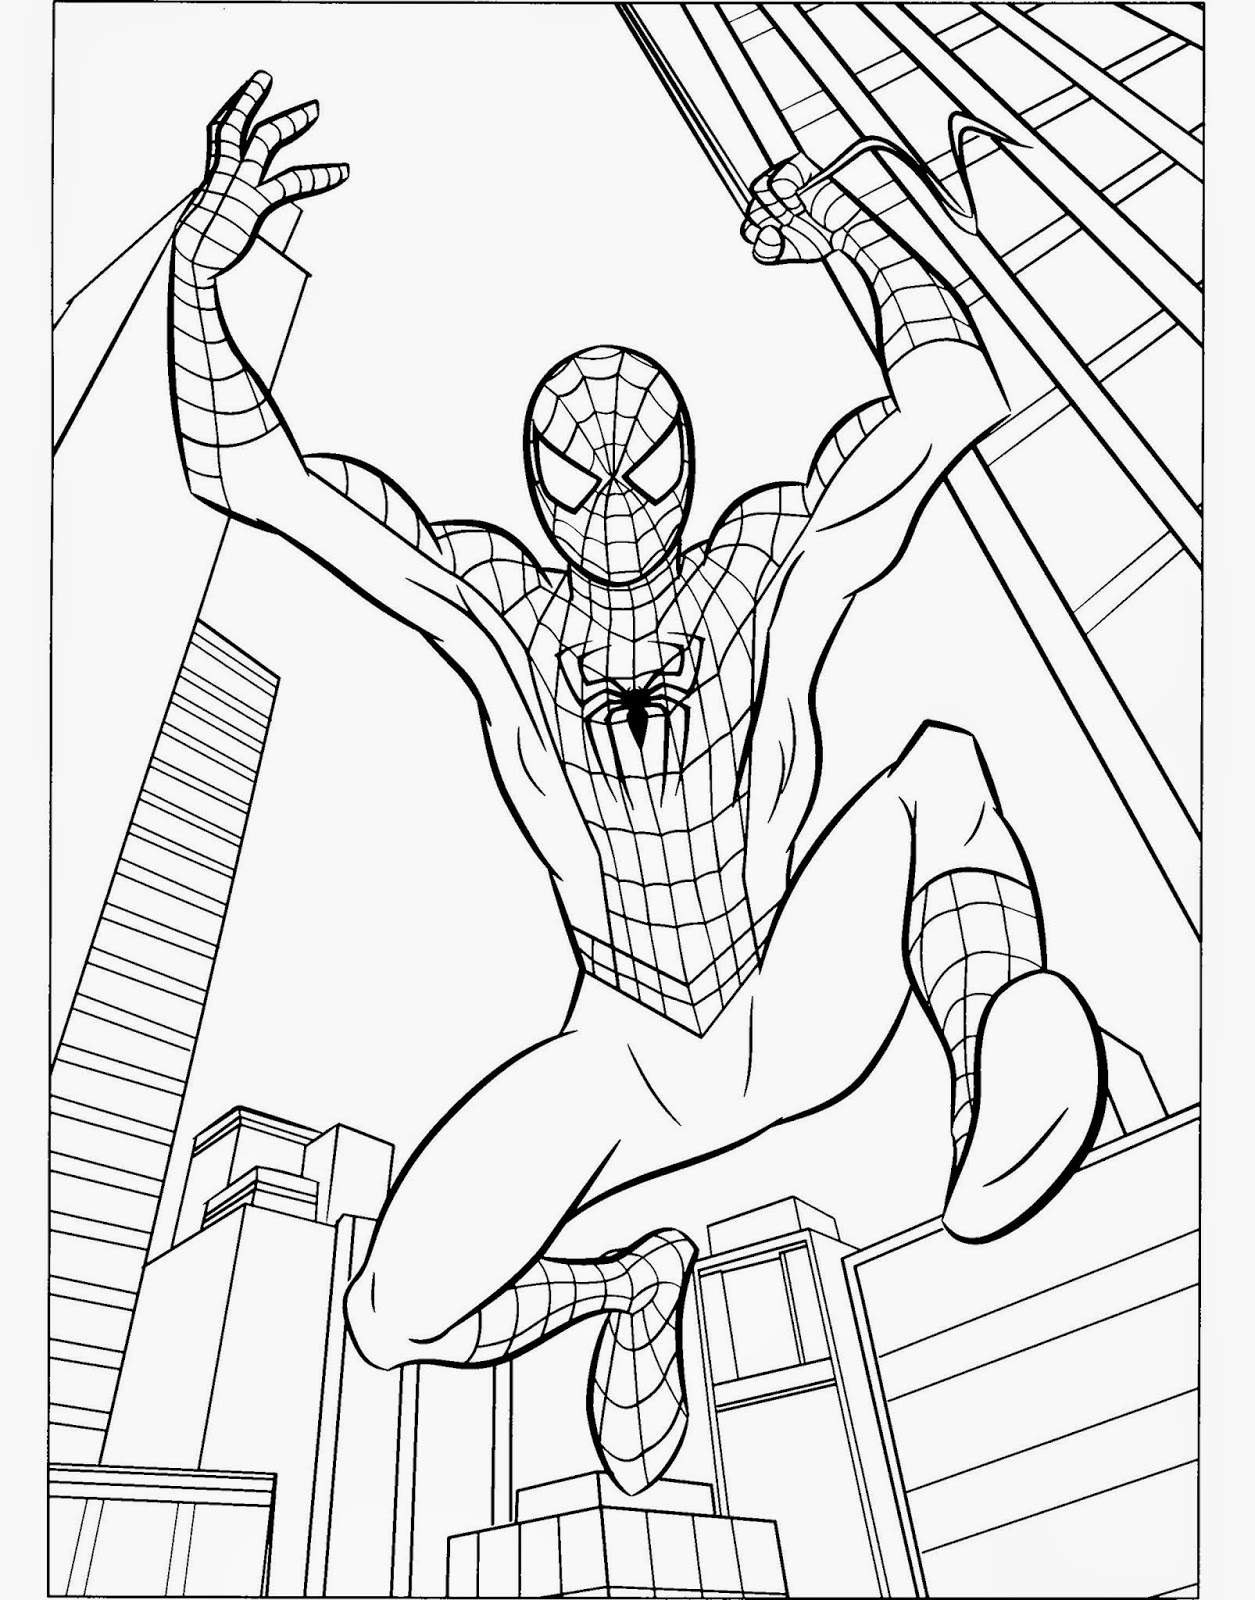 spiderman colouring pics coloring pictures of spiderman pictures gallery show spiderman pics colouring